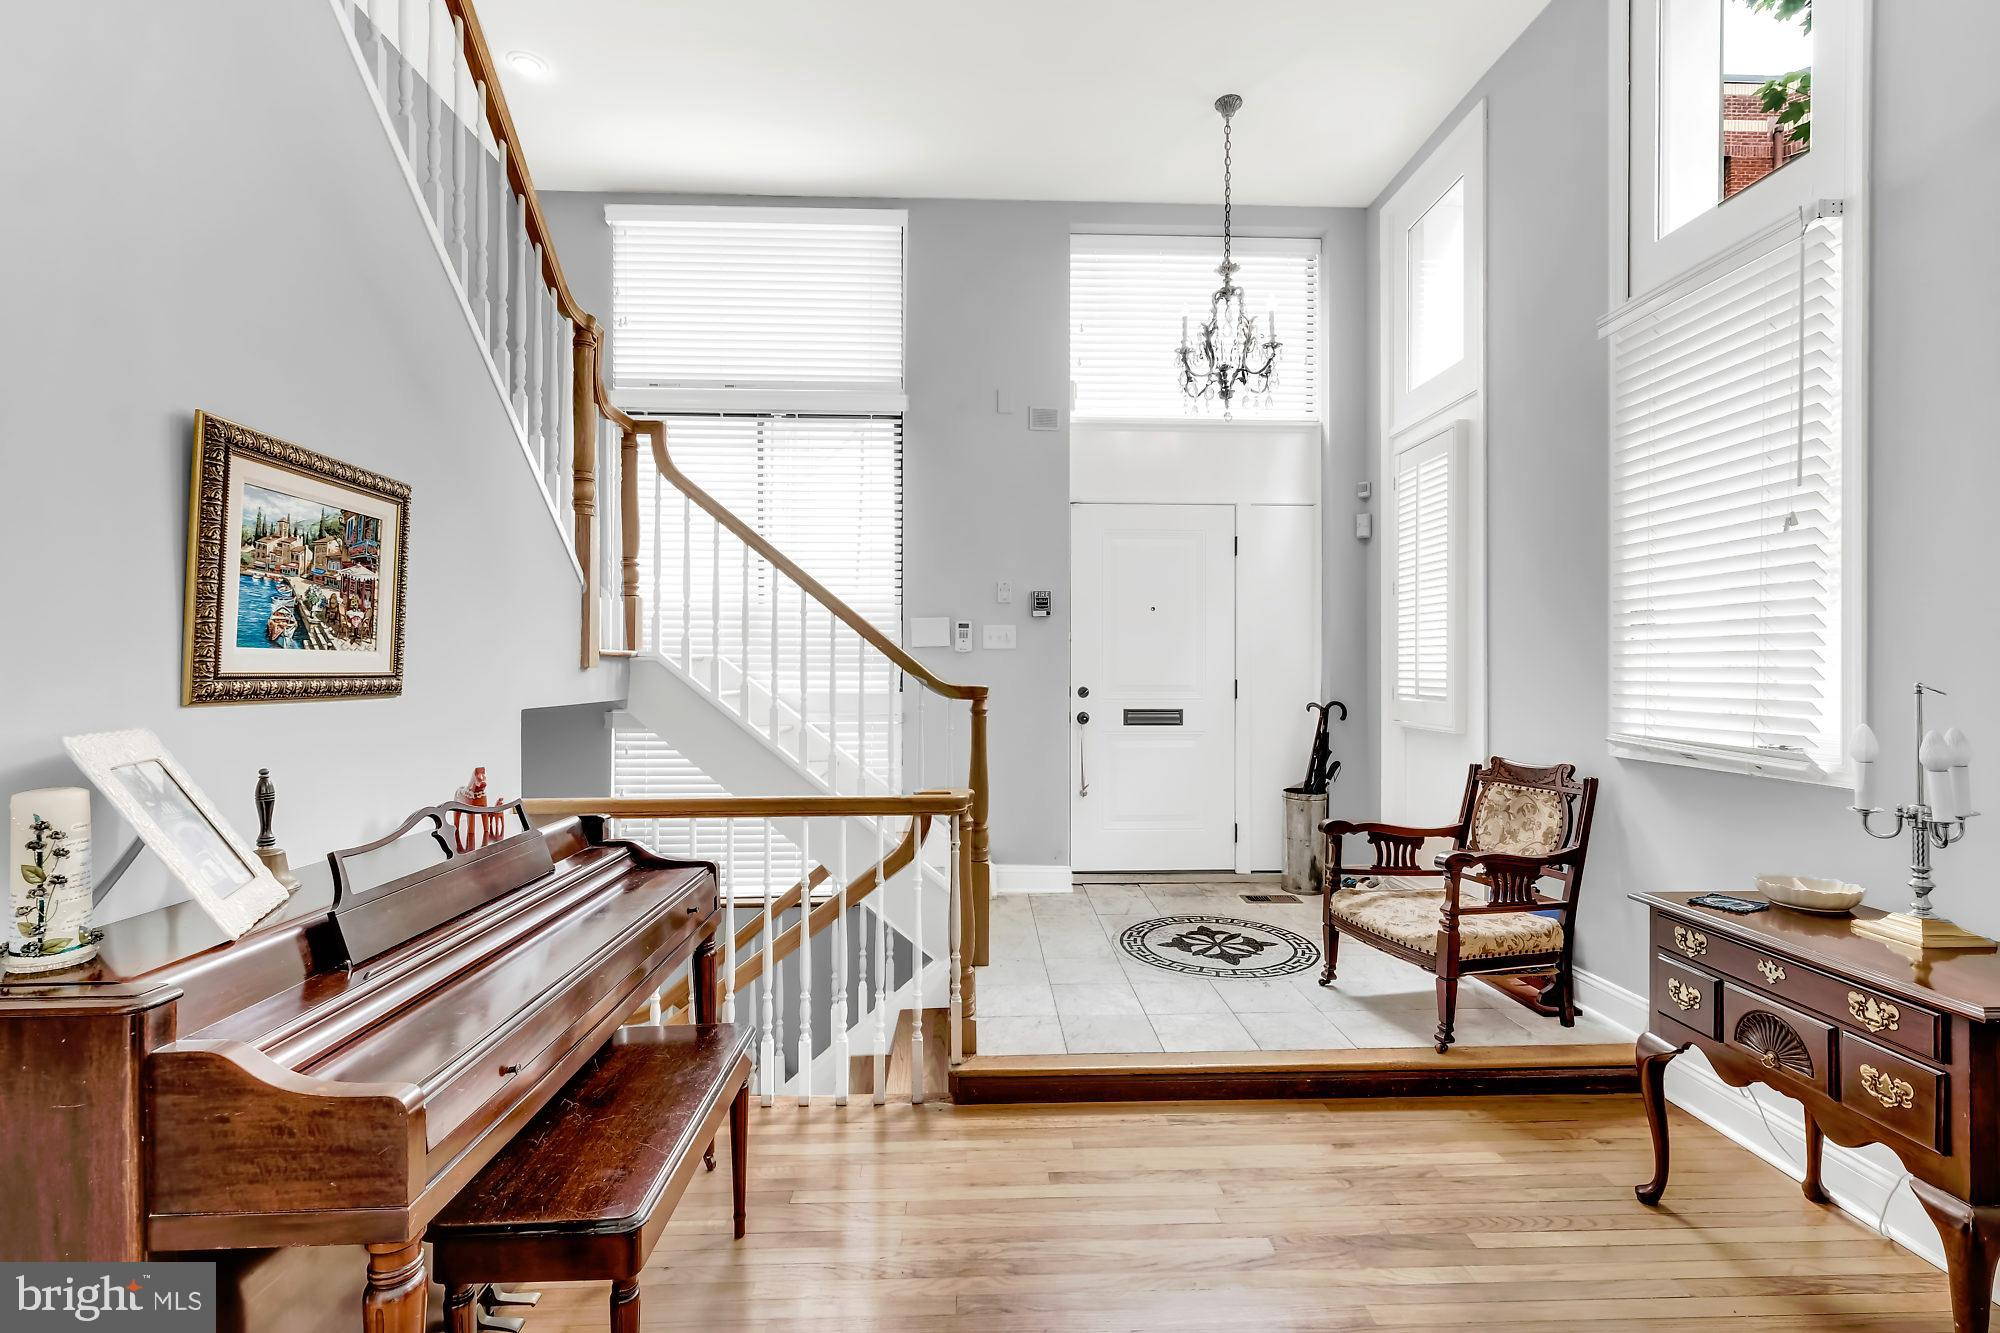 MUST SEE OLD CITY  SUN SPLASHED THREE BEDROOM PLUS DEN CORNER HOME WITH ONE DEEDED PARKING SPACE (included in the sale price). Step into an elegant and dramatic entrance way, where your eyes will gaze upon a stunning and well proportioned living room with CATHEDRAL CEILINGS. A magnificent staircase leads you to a beautiful and most efficiently laid out cook's kitchen with a BREAKFAST BAR and dining area. There is also a PICTURE PERFECT family room with FLOOR TO CEILING  windows and a fireplace. The third floor of this residence boasts TWO BEDROOMS  with a jack and Jill style  bath. Your master suite level you may never want to leave! Fantastic space. Large MARBLE and TILE bath, and your own PRIVATE DECK with stunning views. The lower  is completely finished, with a full bath and tons of ADDITIONAL STORAGE. This home on a COBBLE STONE street offers urban living at it's best, as well as fantastic CAFES and RESTAURANTS, easy access to I95, and just minutes from Cooper, Jefferson, and Pennsylvania Hospitals.